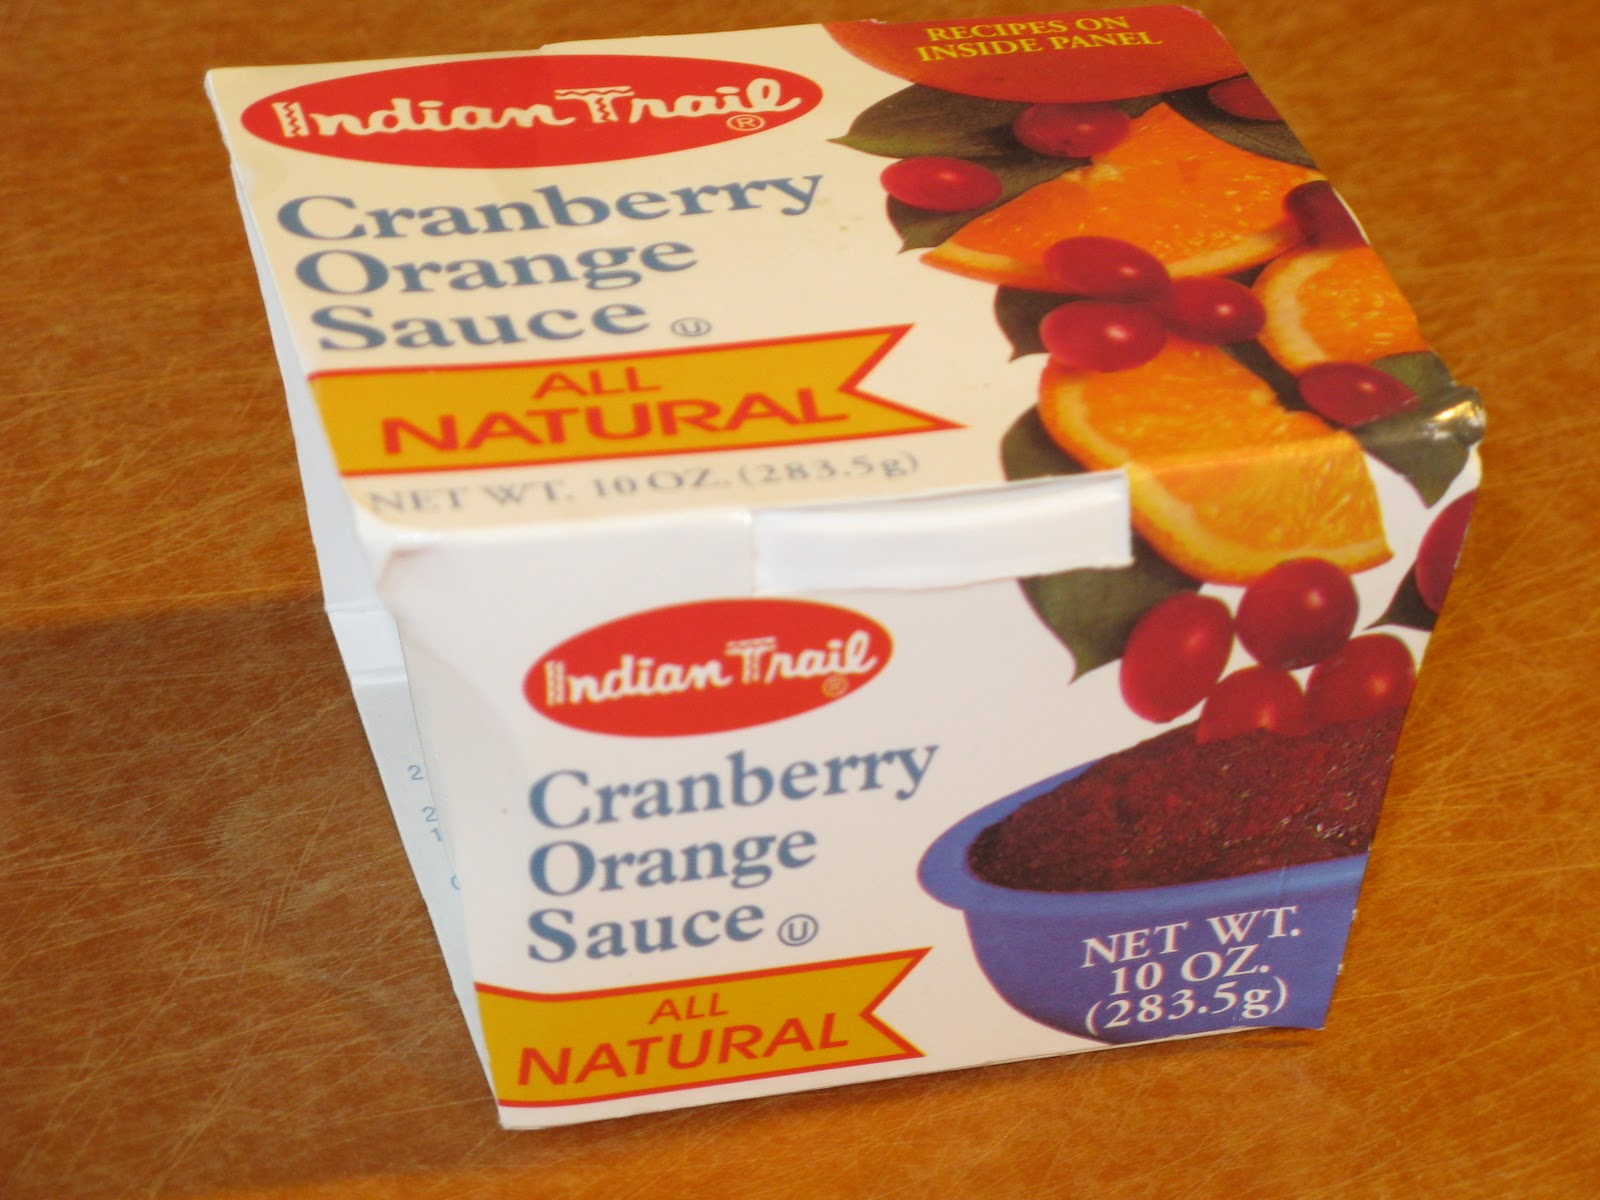 Cora's Recipe for (Almost Indian Trail) Cranberry Orange Sauce